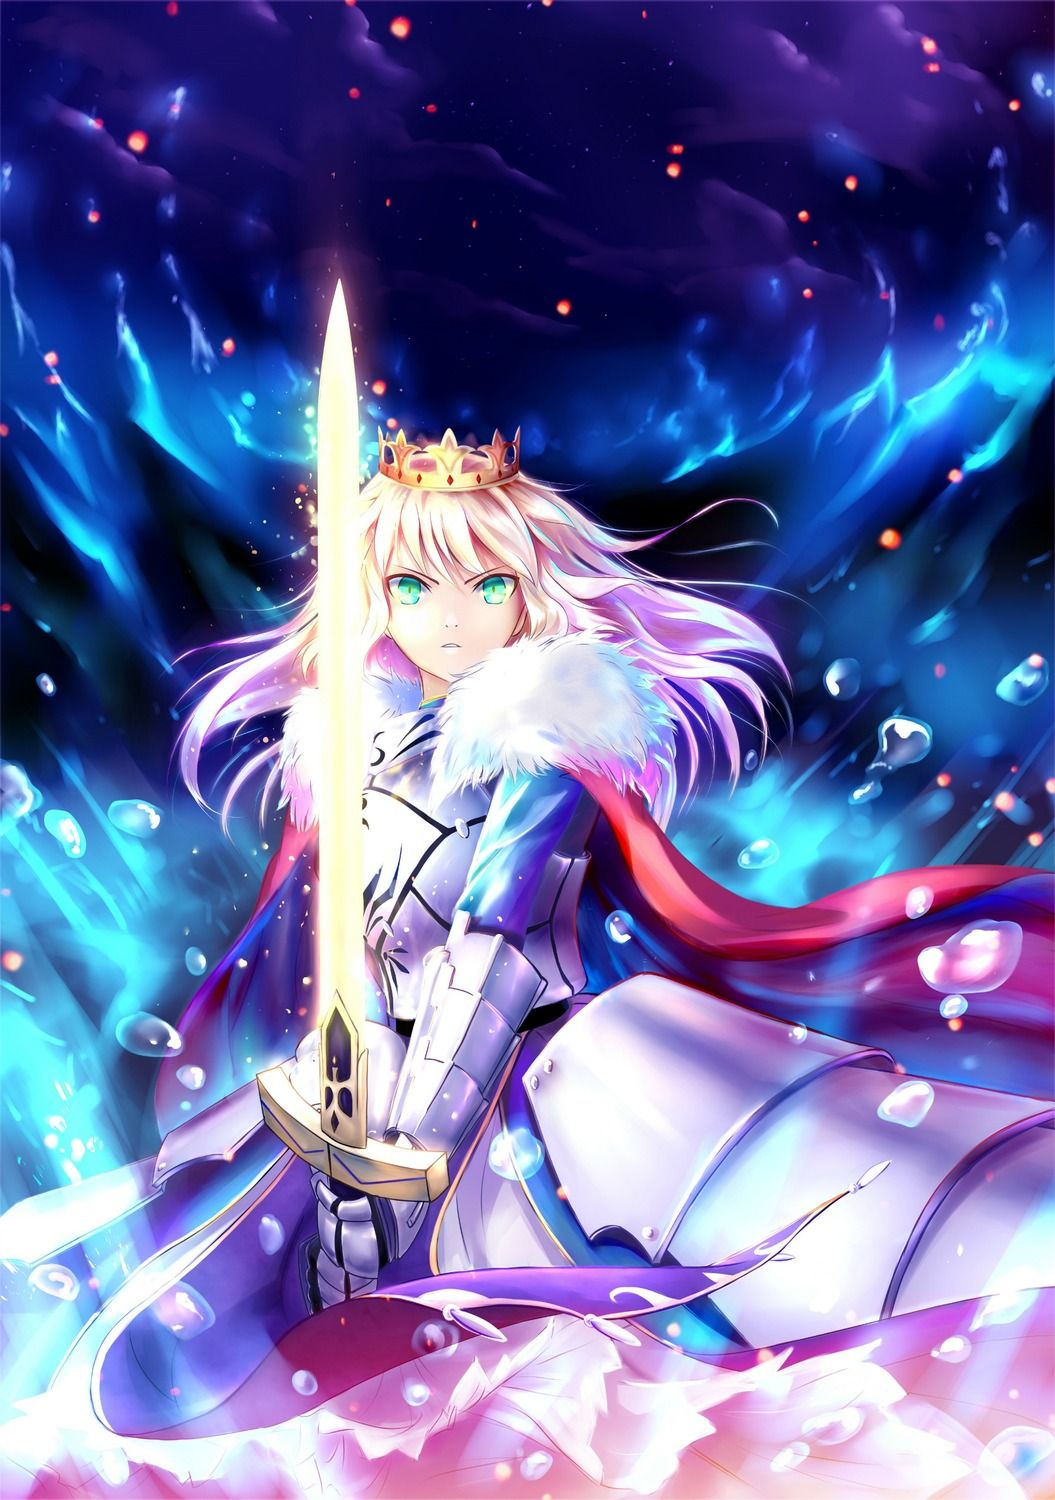 Fate Stay Night Fate Grand Order セイバー 壁紙 Tsundora Com